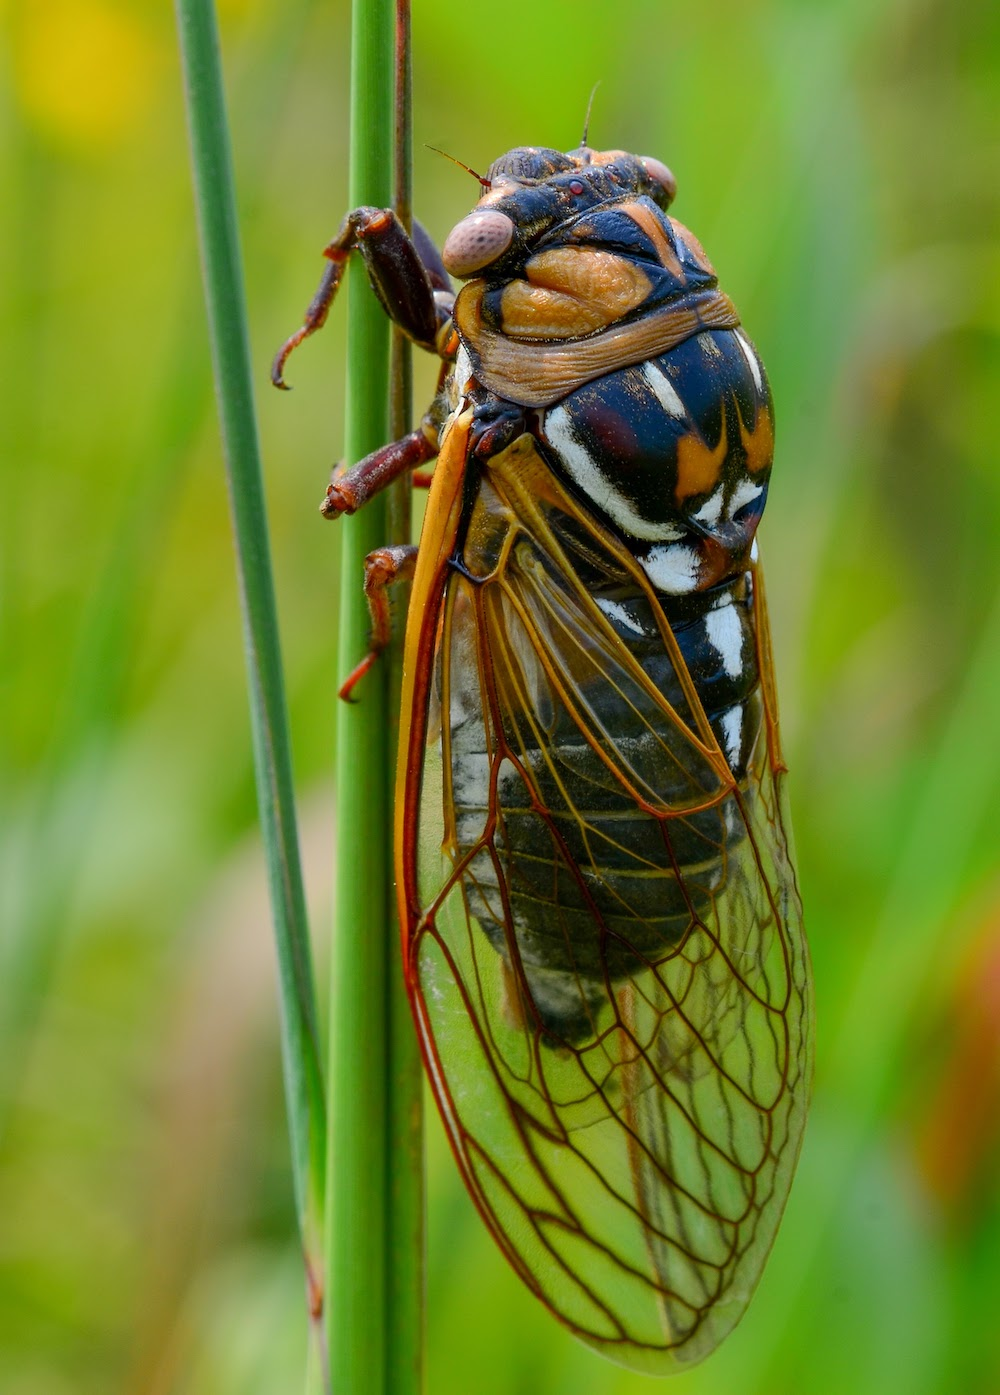 A cicada insect with orange wings, orange eyes, and mottled white and orange and green body perched on a tall prairie grass.